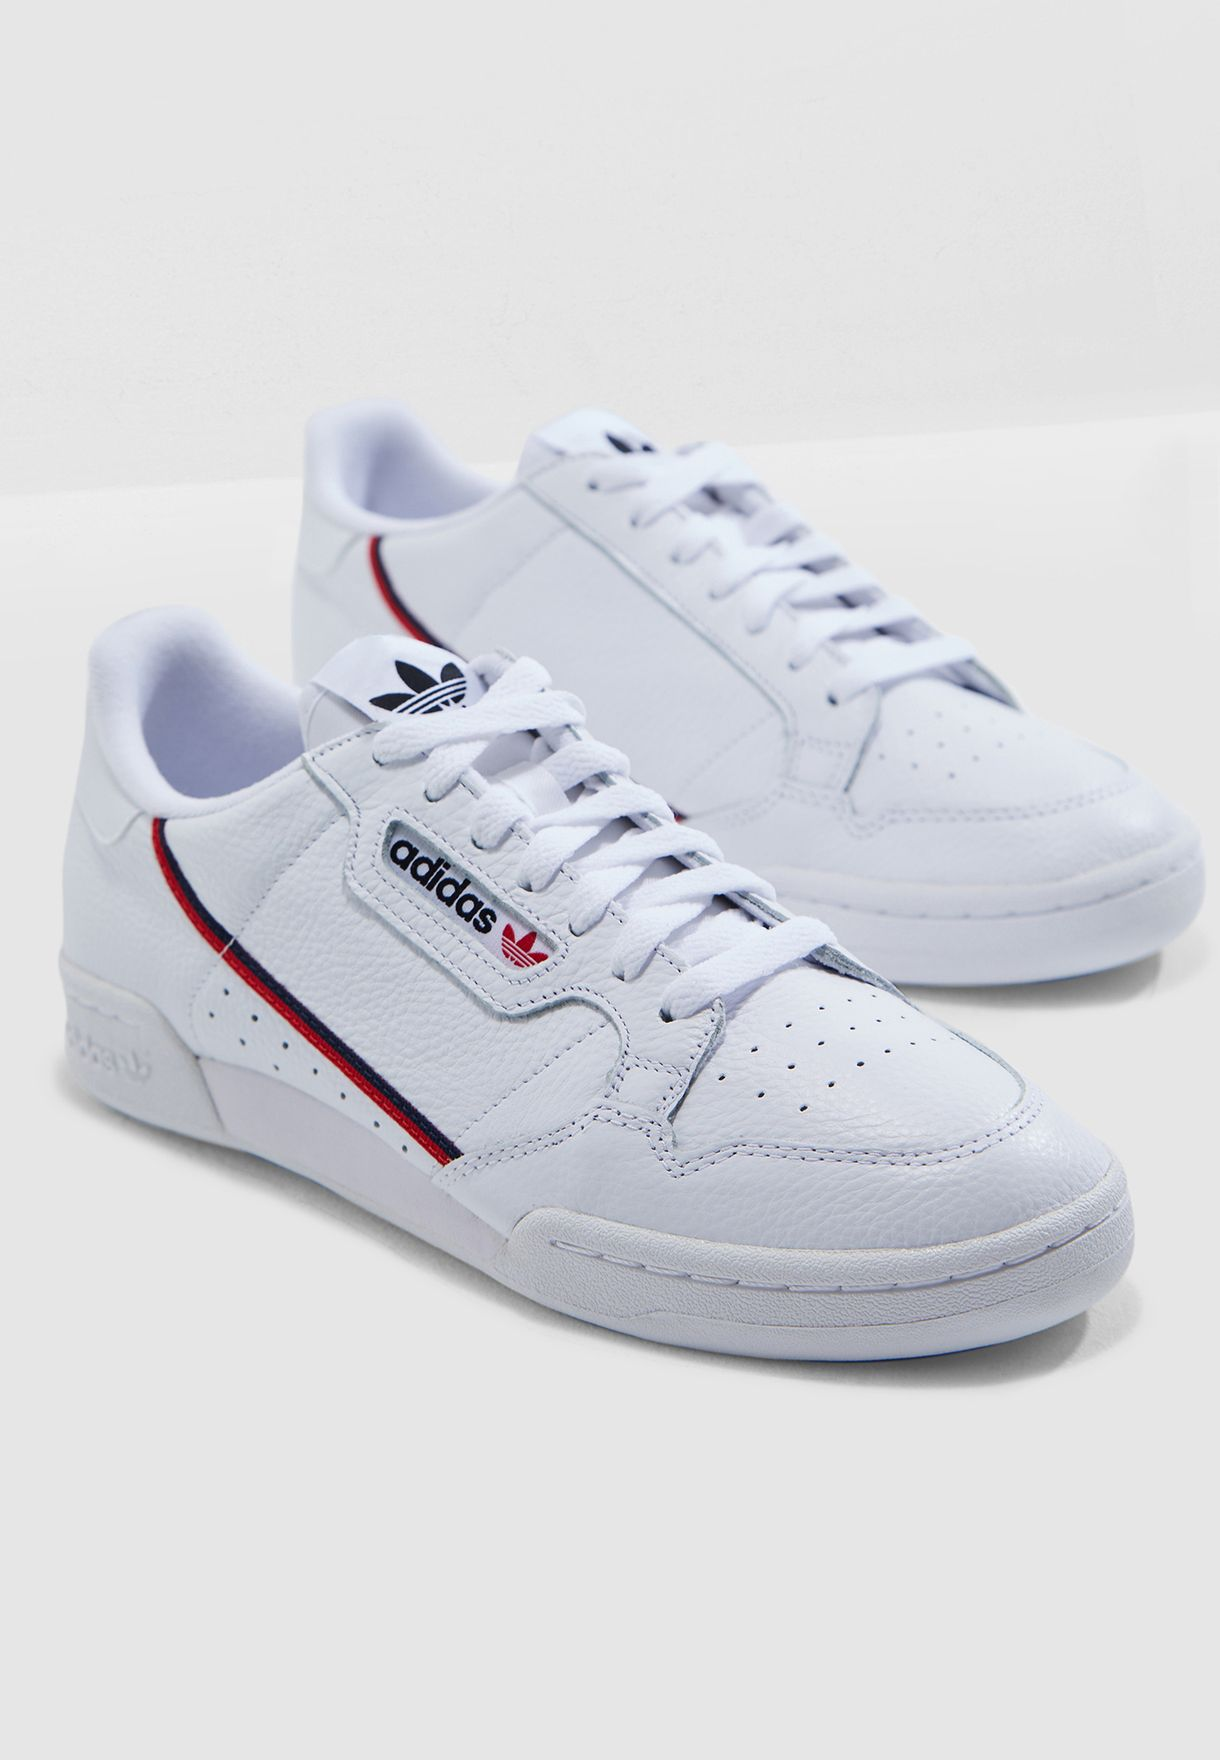 ddf406e26 Shop adidas Originals white Continental 80 G27706 for Men in UAE ...